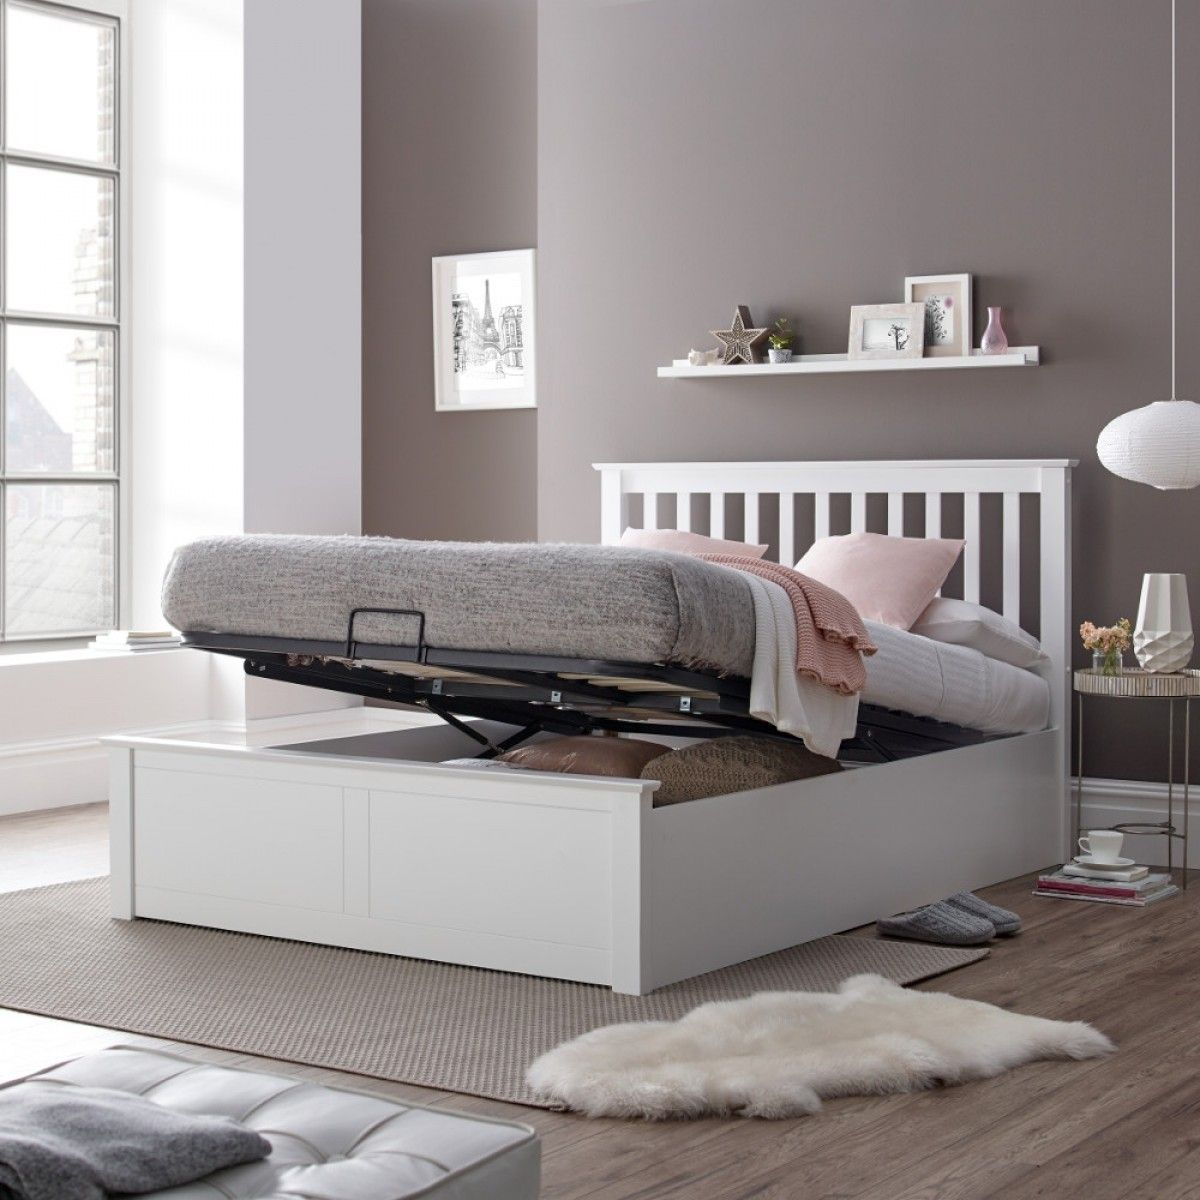 Malmo White Wooden Ottoman Bed White Wooden Bed Ottoman Bed